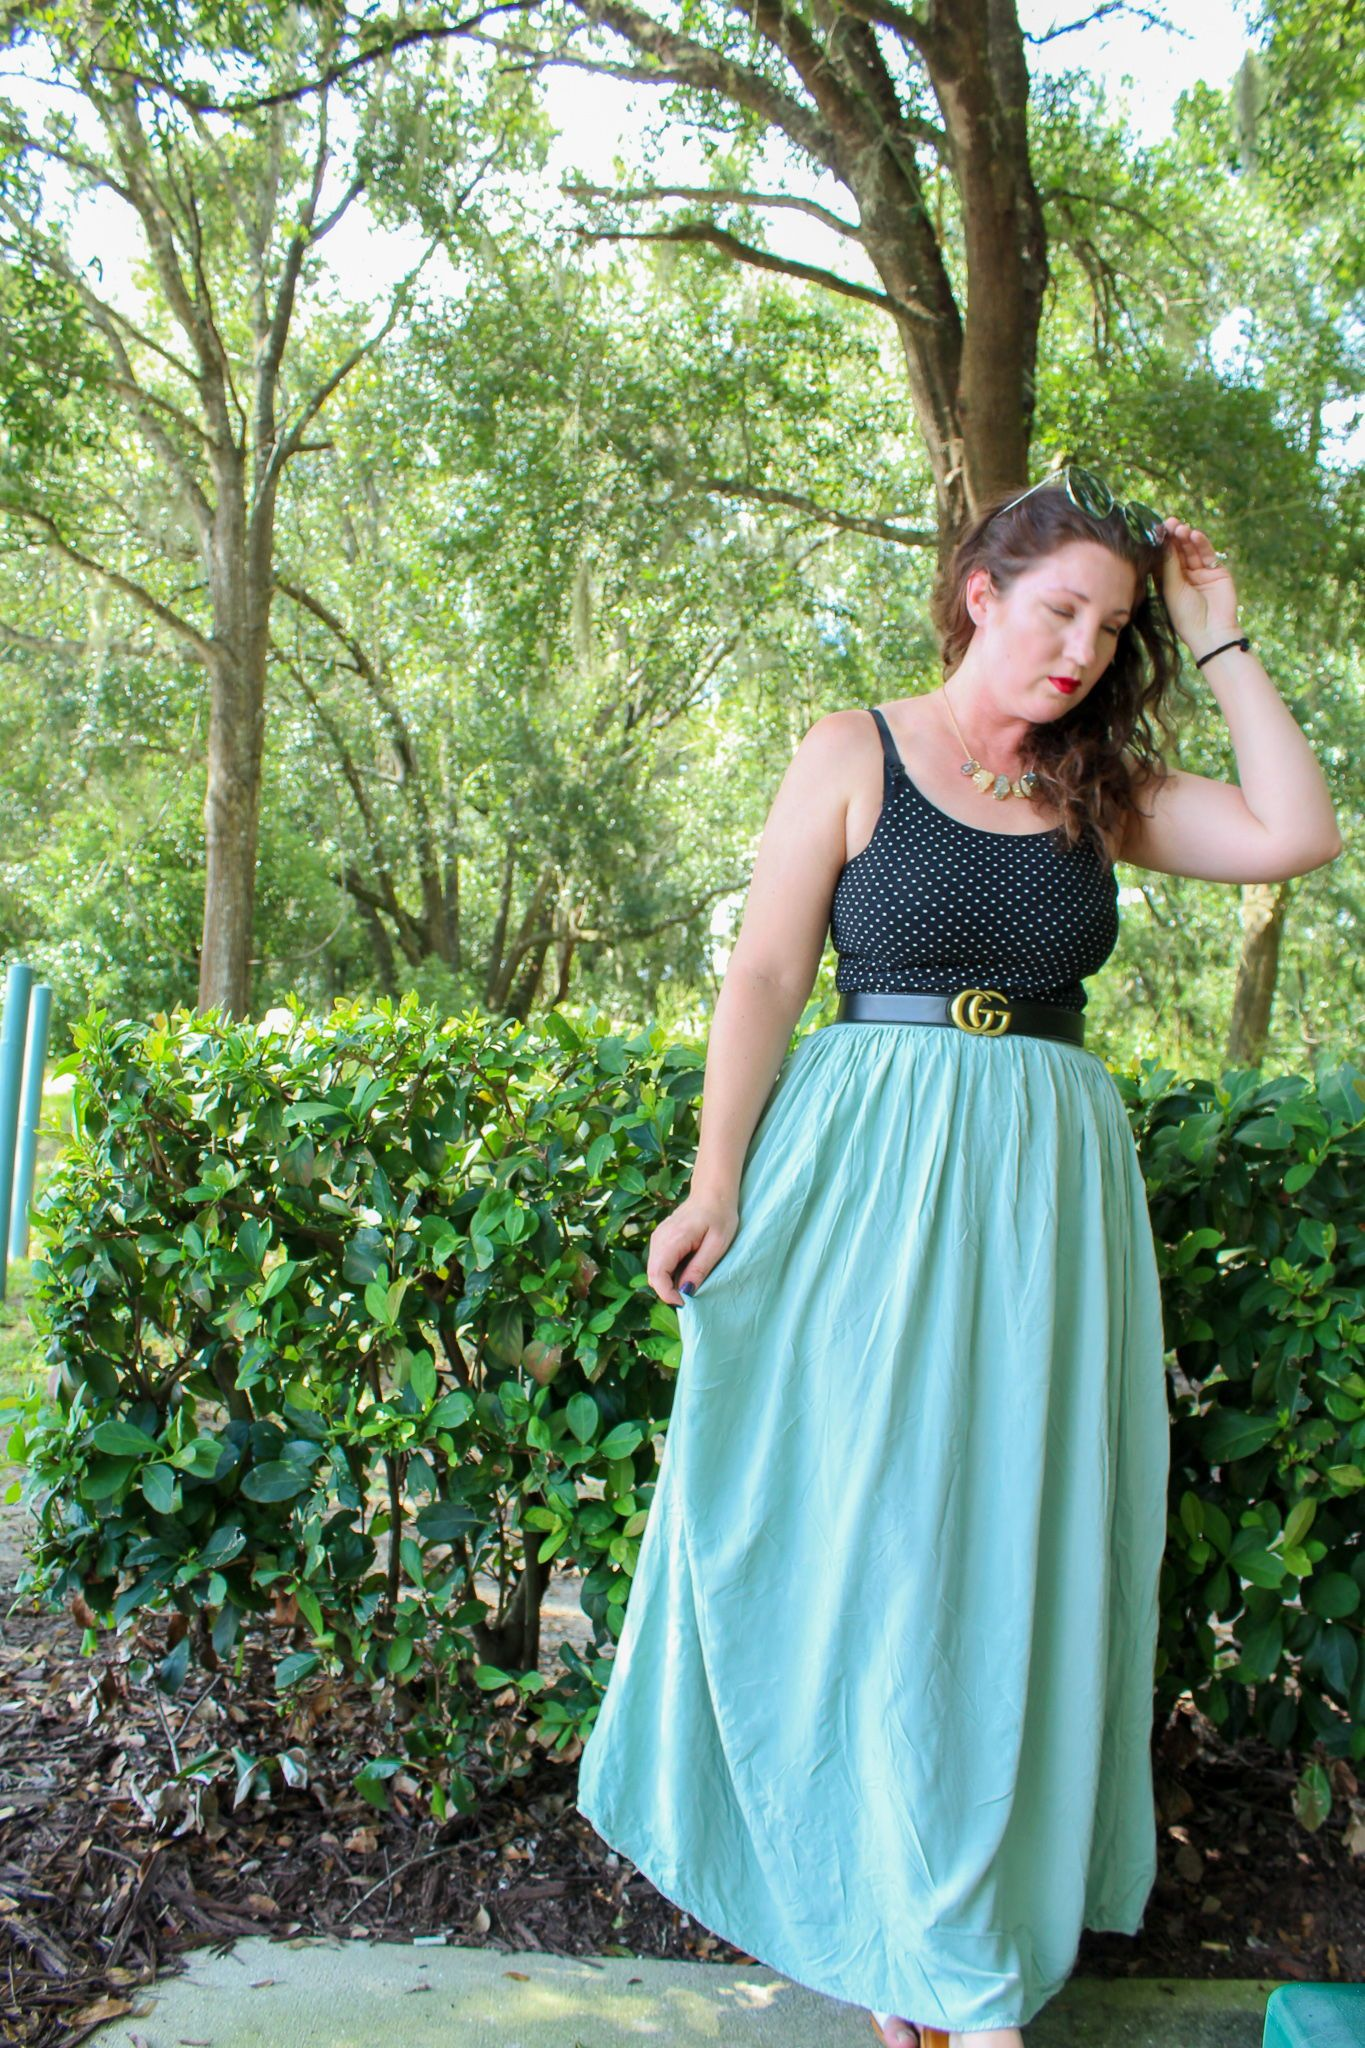 Watch 21 Cool Outfits With Mint Skirts video